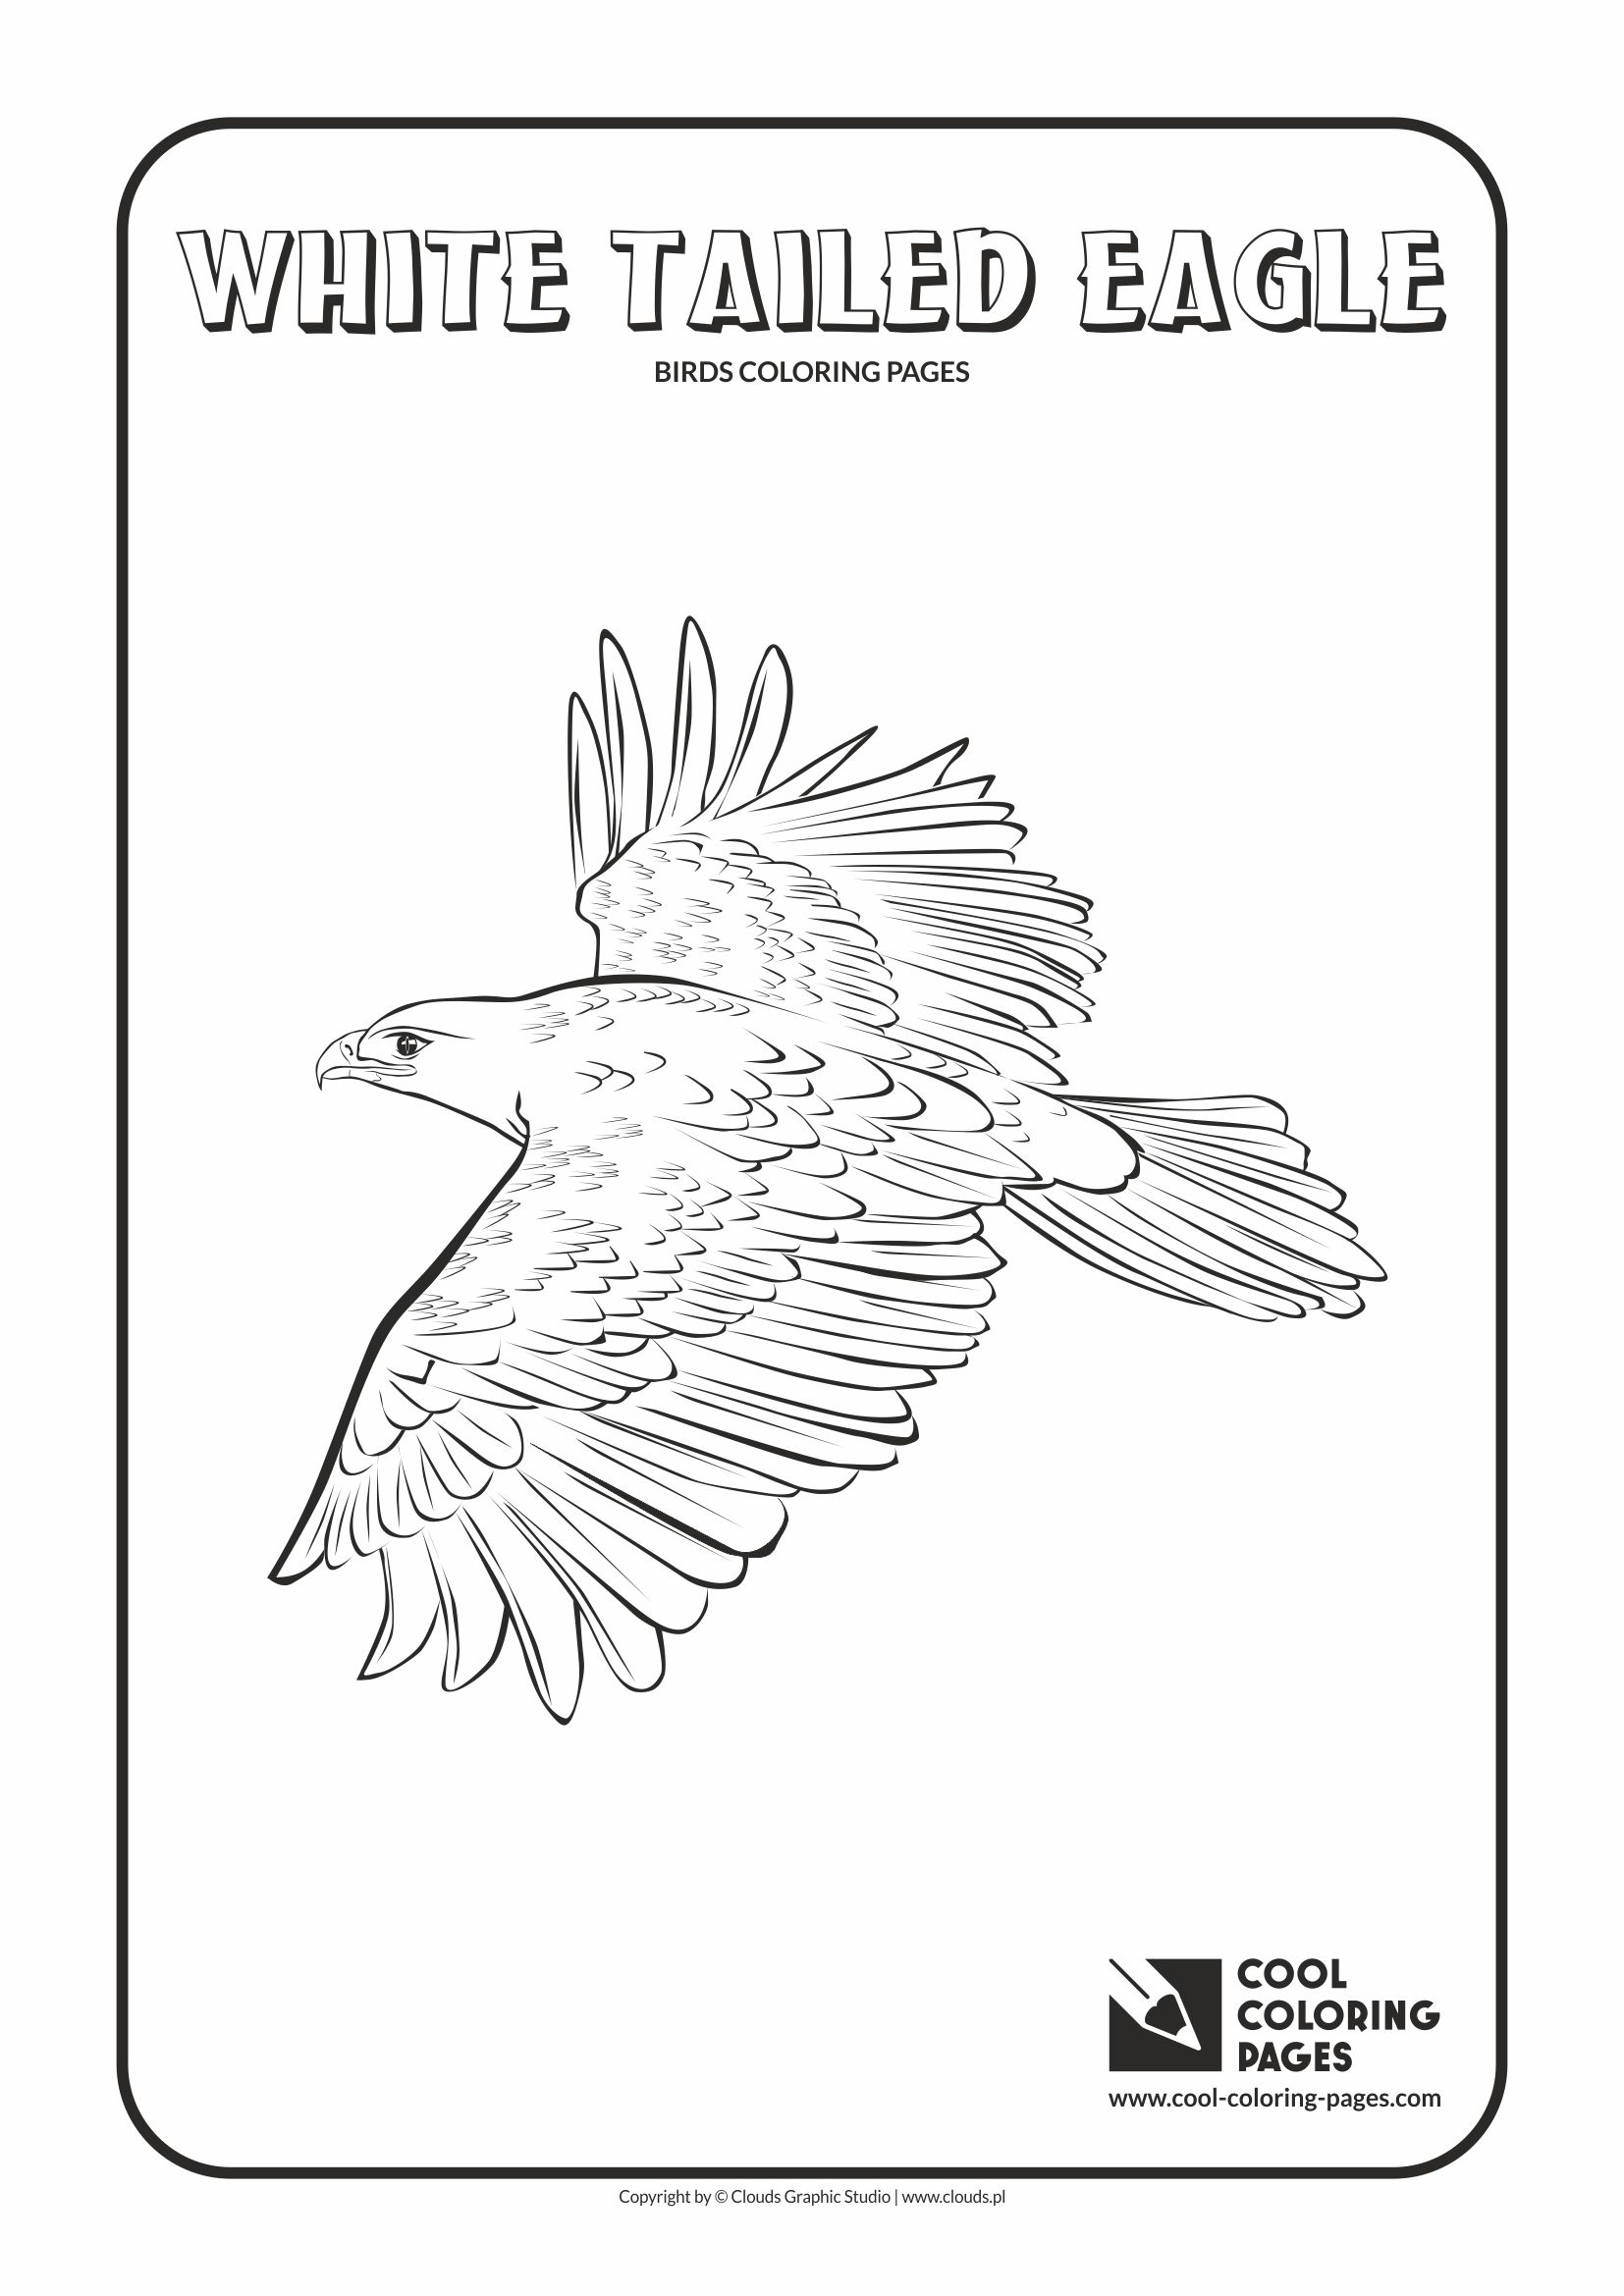 Cool Coloring Pages - Animals / White tailed eagle / Coloring page with white tailed eagle